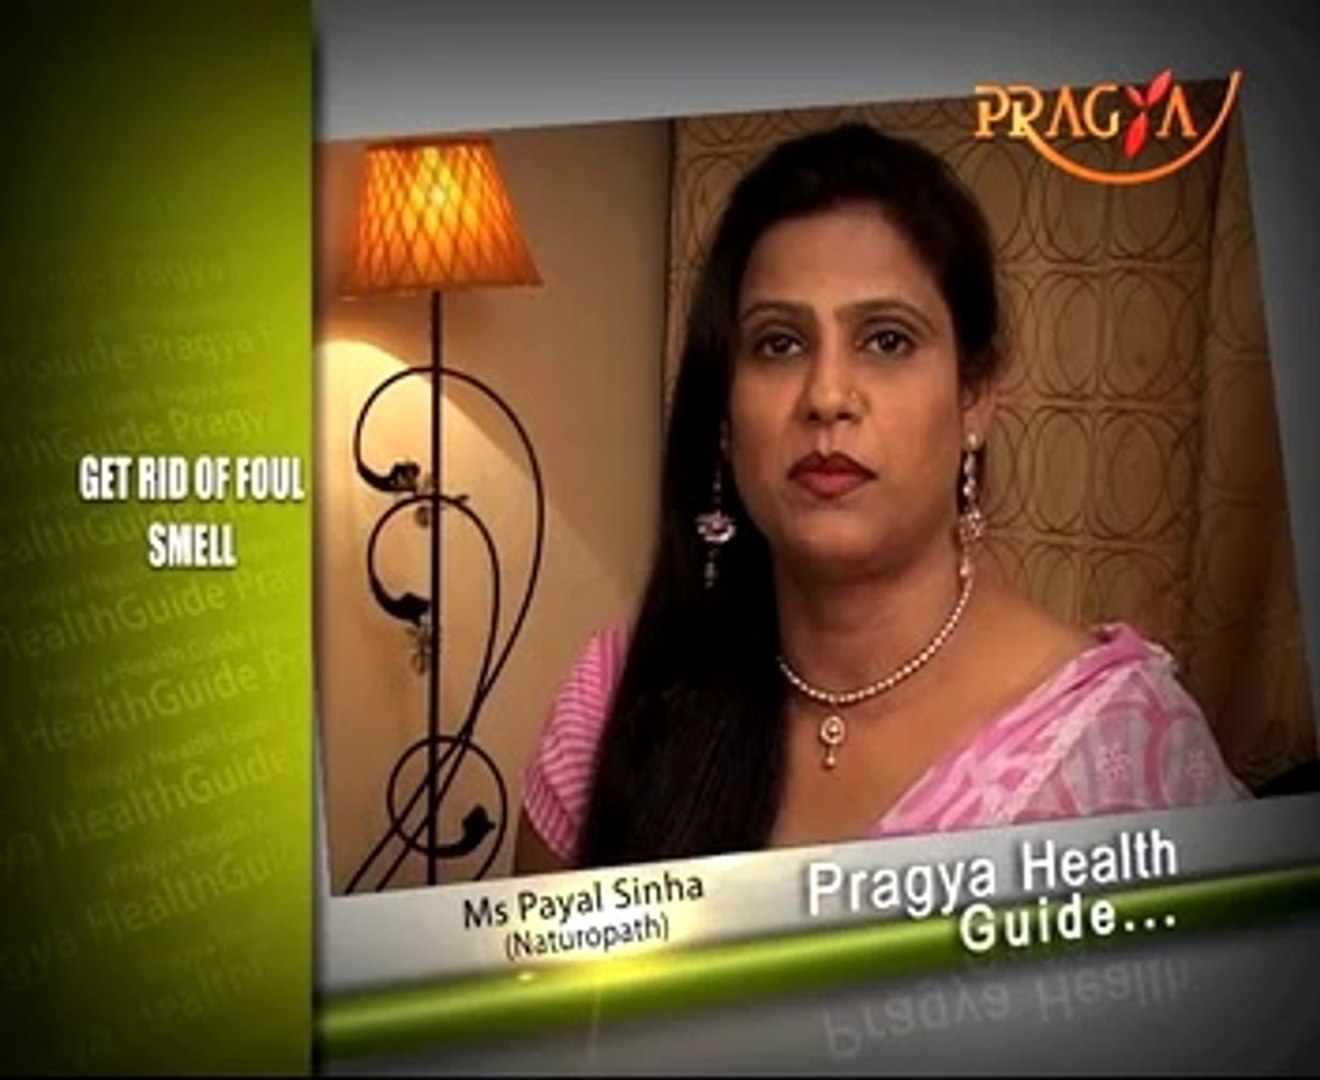 Dr  Payal Sinha shared how to get smell free beautiful hair in summer